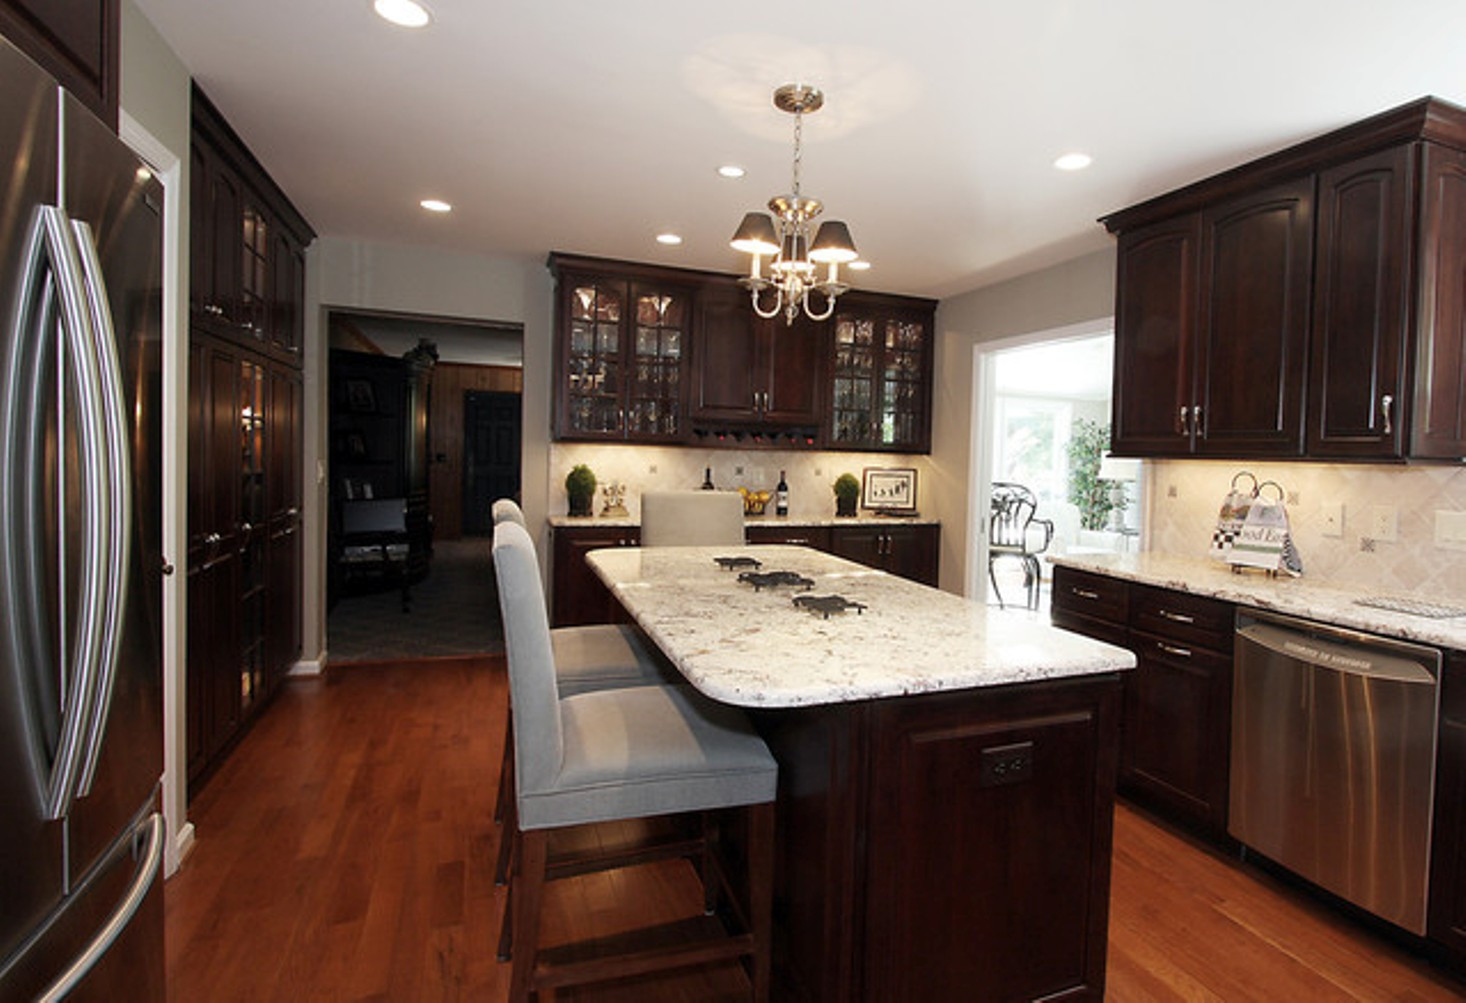 Best ideas about Remodel Kitchen Ideas . Save or Pin 20 Kitchen Remodeling Ideas Now.